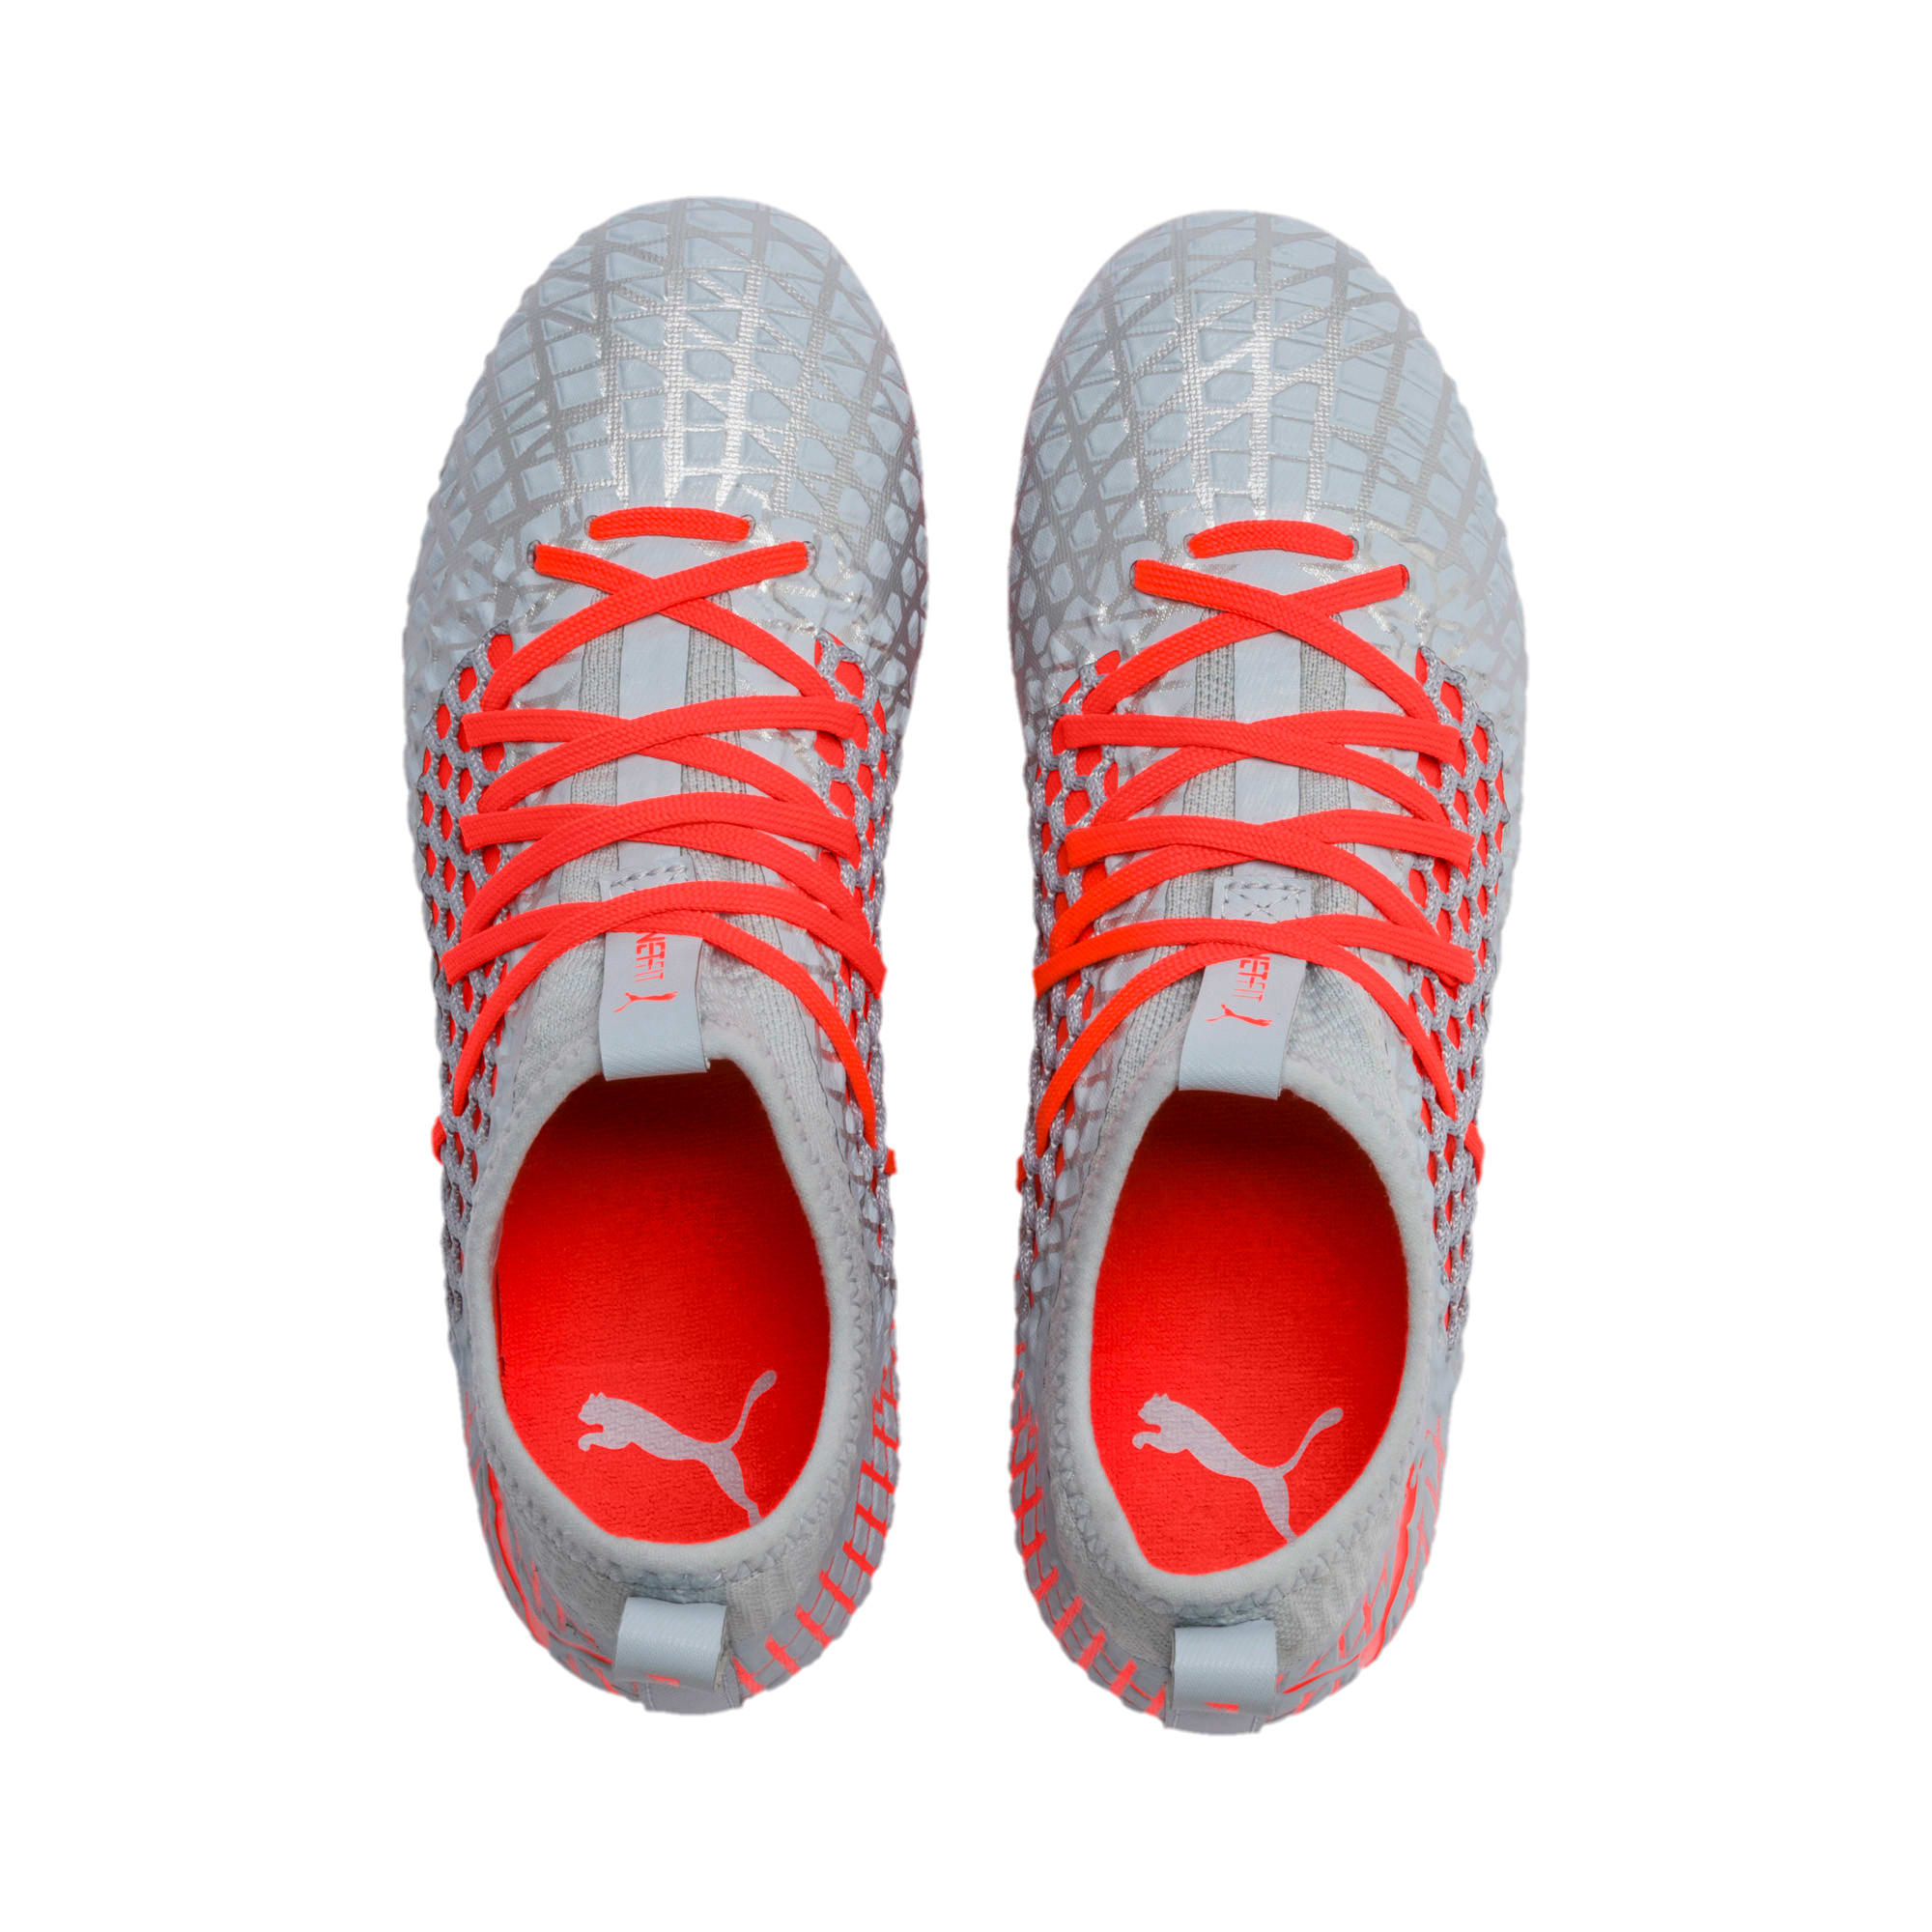 Thumbnail 6 of FUTURE 4.3 NETFIT FG/AG Youth Fußballschuhe, Glacial Blue-Nrgy Red, medium